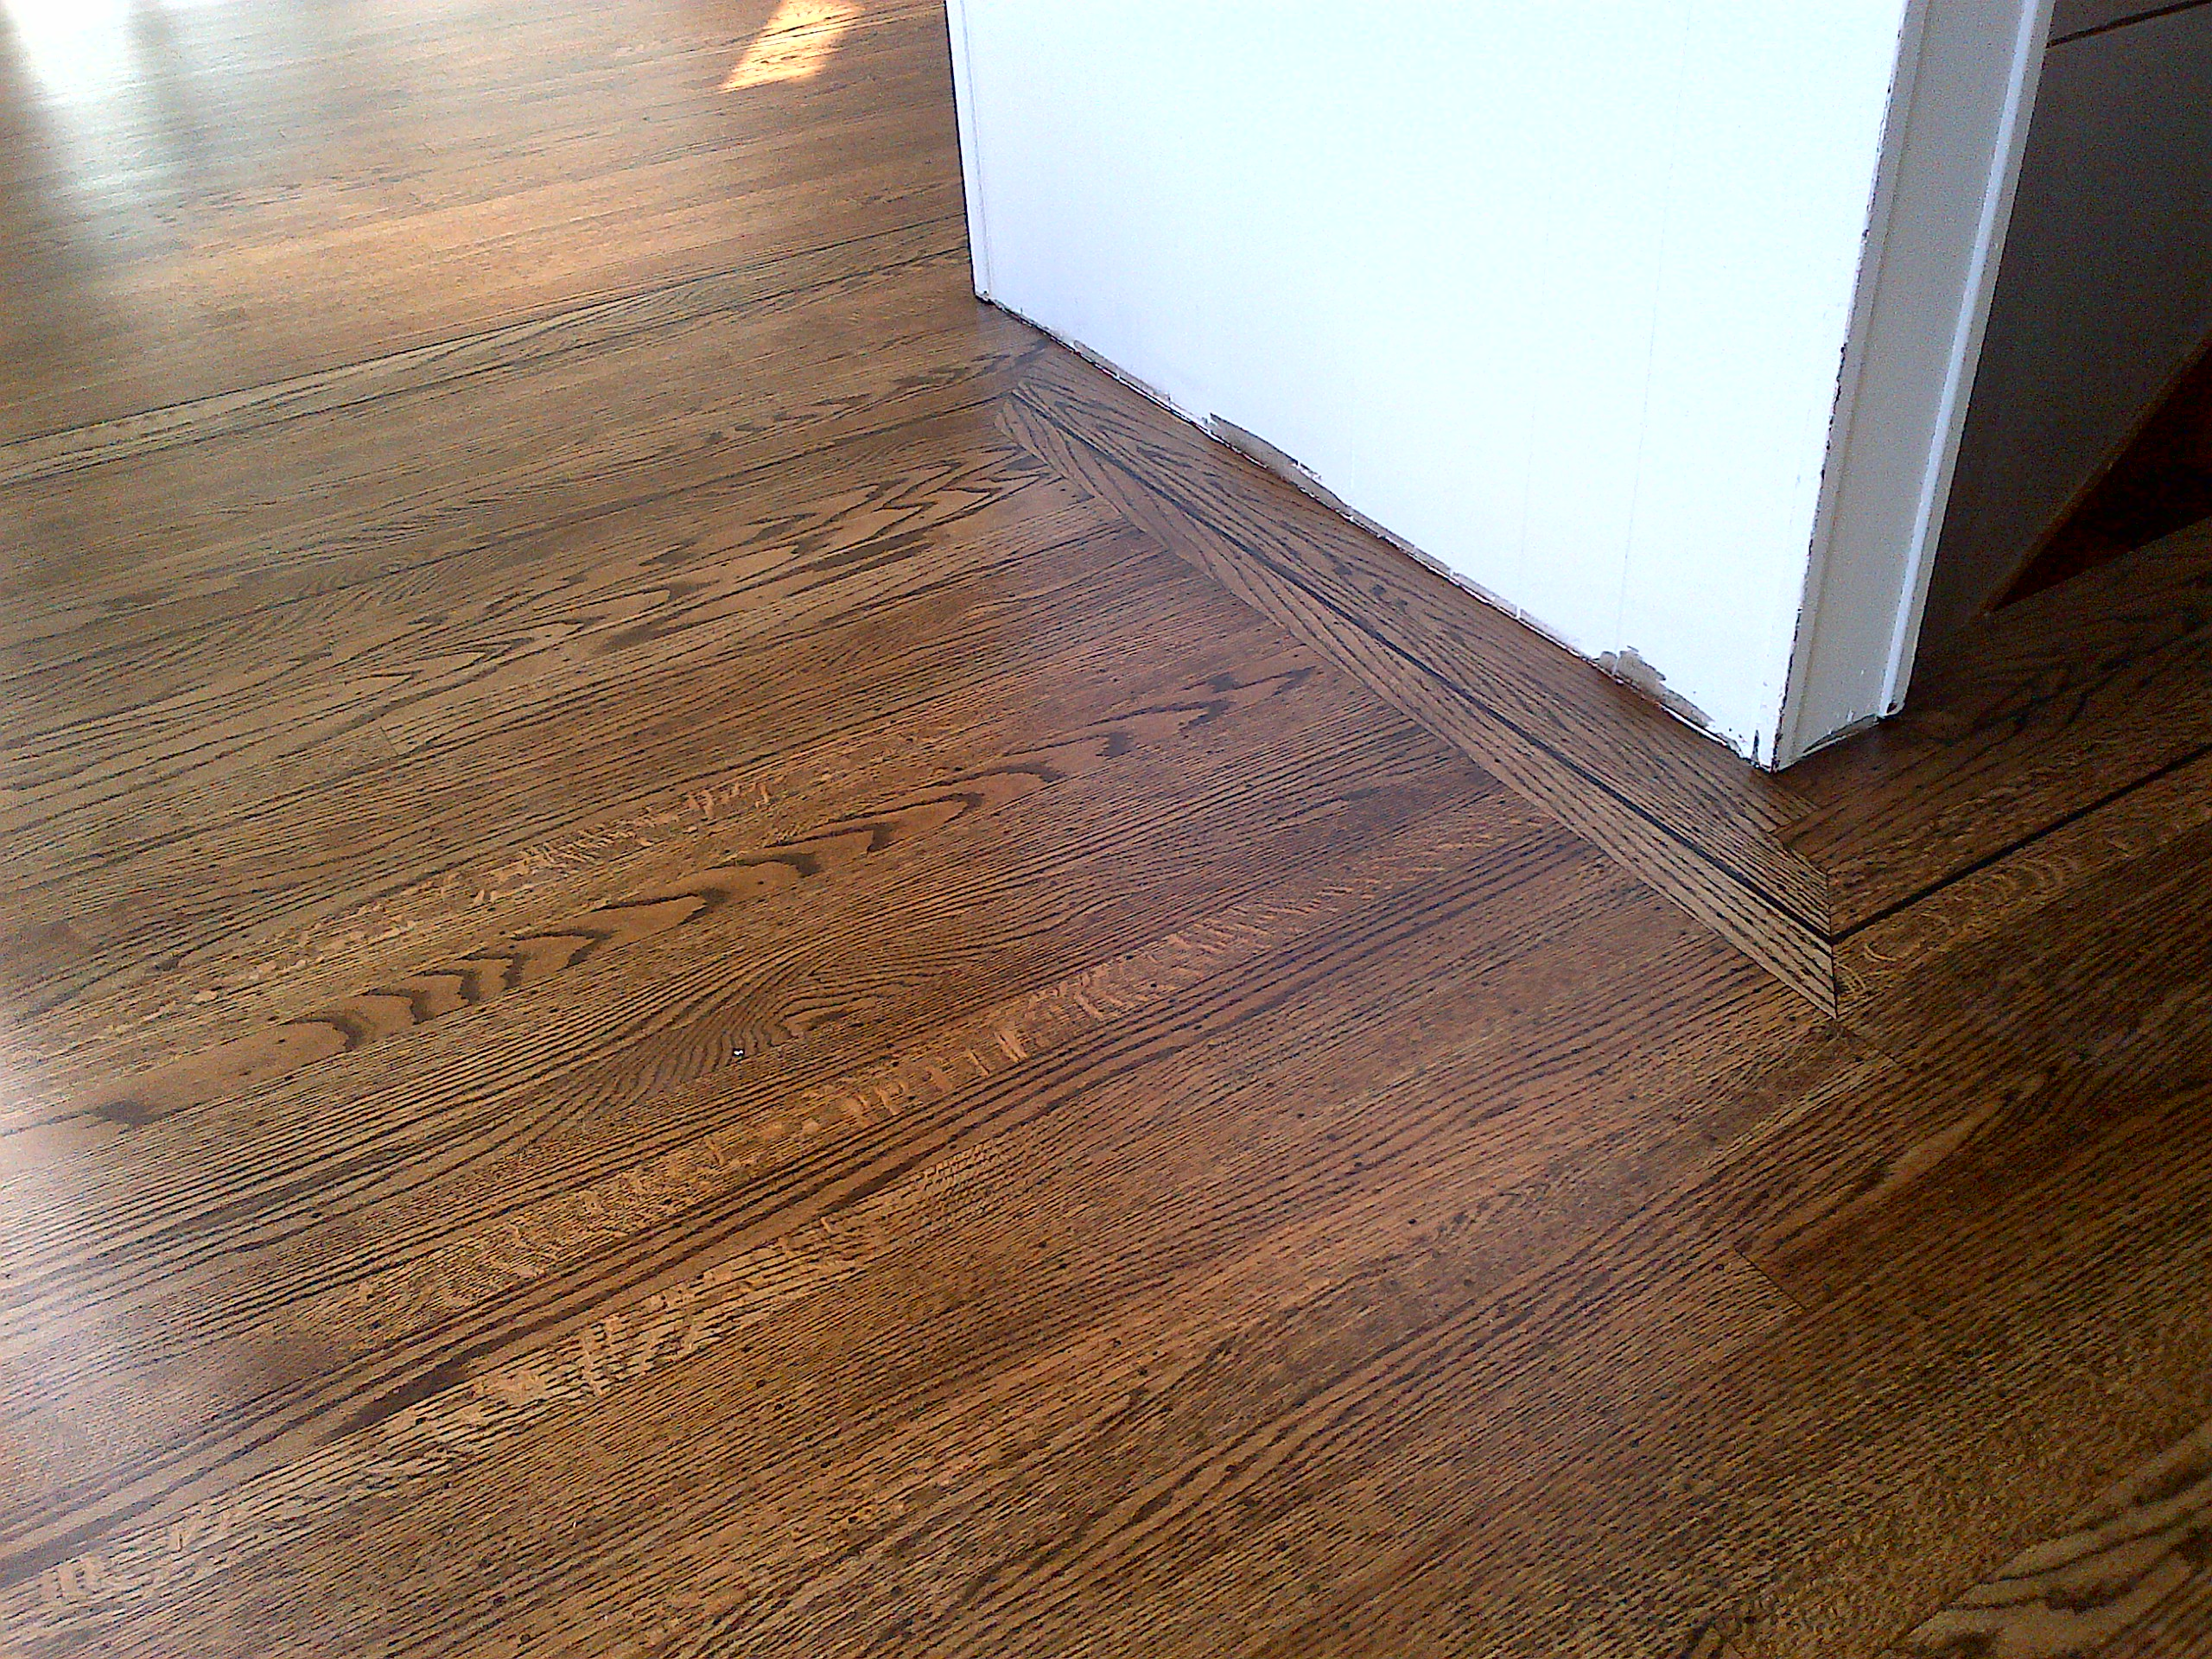 thewhitebuffalostylingcocom wood staining hardwood on amazing floors of stains imgid from concept to after style dark remove sanding urine pic how and for stunning pet stain guaranteed